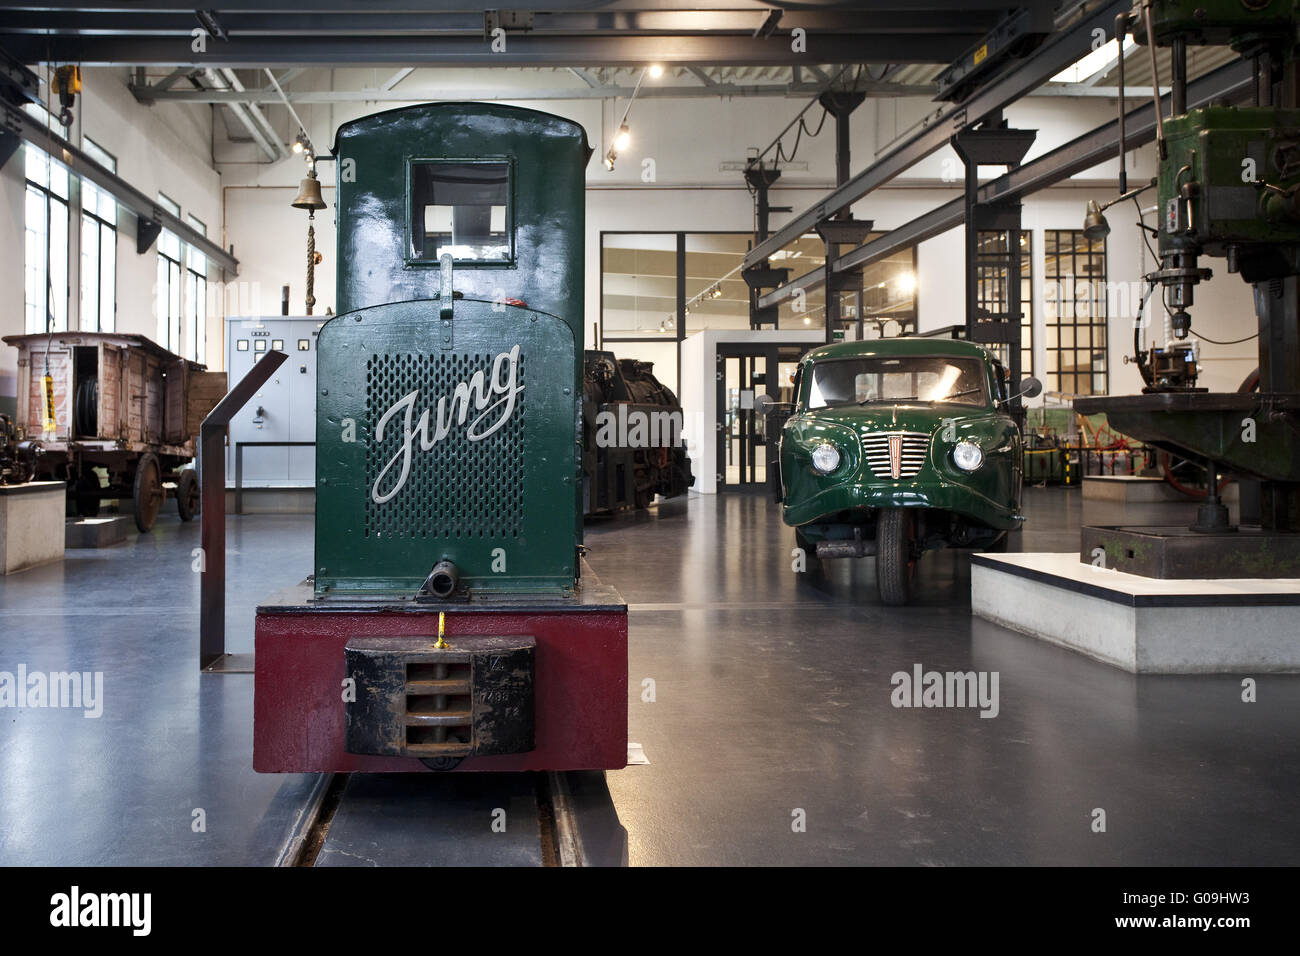 The machines and Local History Museum in Eslohe. - Stock Image